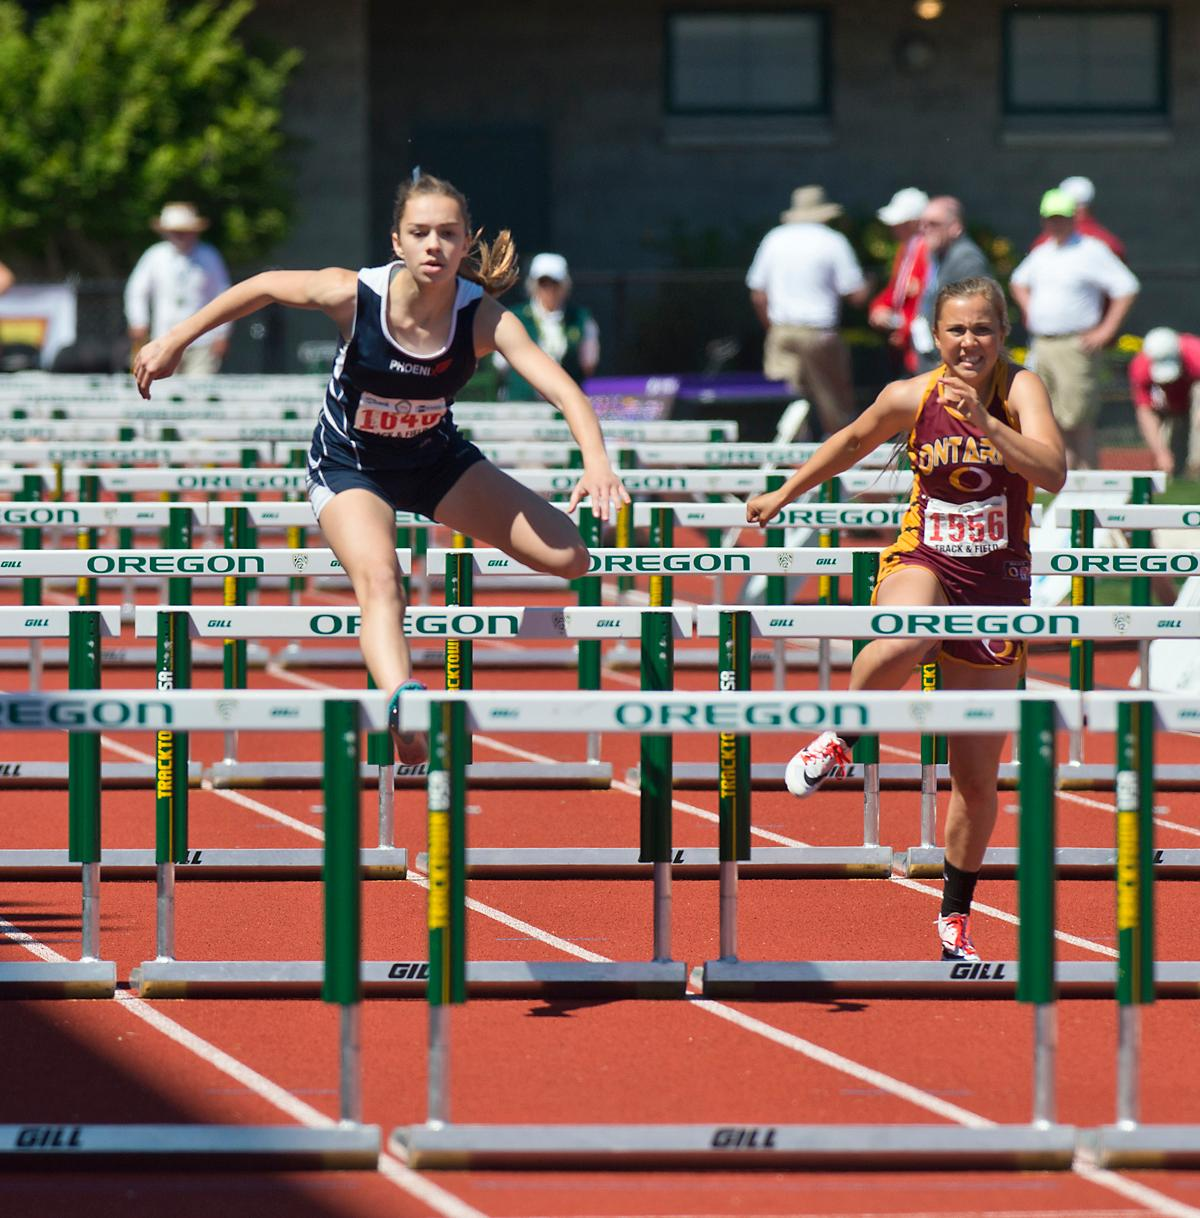 Emily Scanlon from North Marion wins the 4A Girls 100 Hurdles with a time of 15.29 at the OSAA Championship at Hayward Field on Saturday. Photo by Dan Morrison, Oregon News Lab